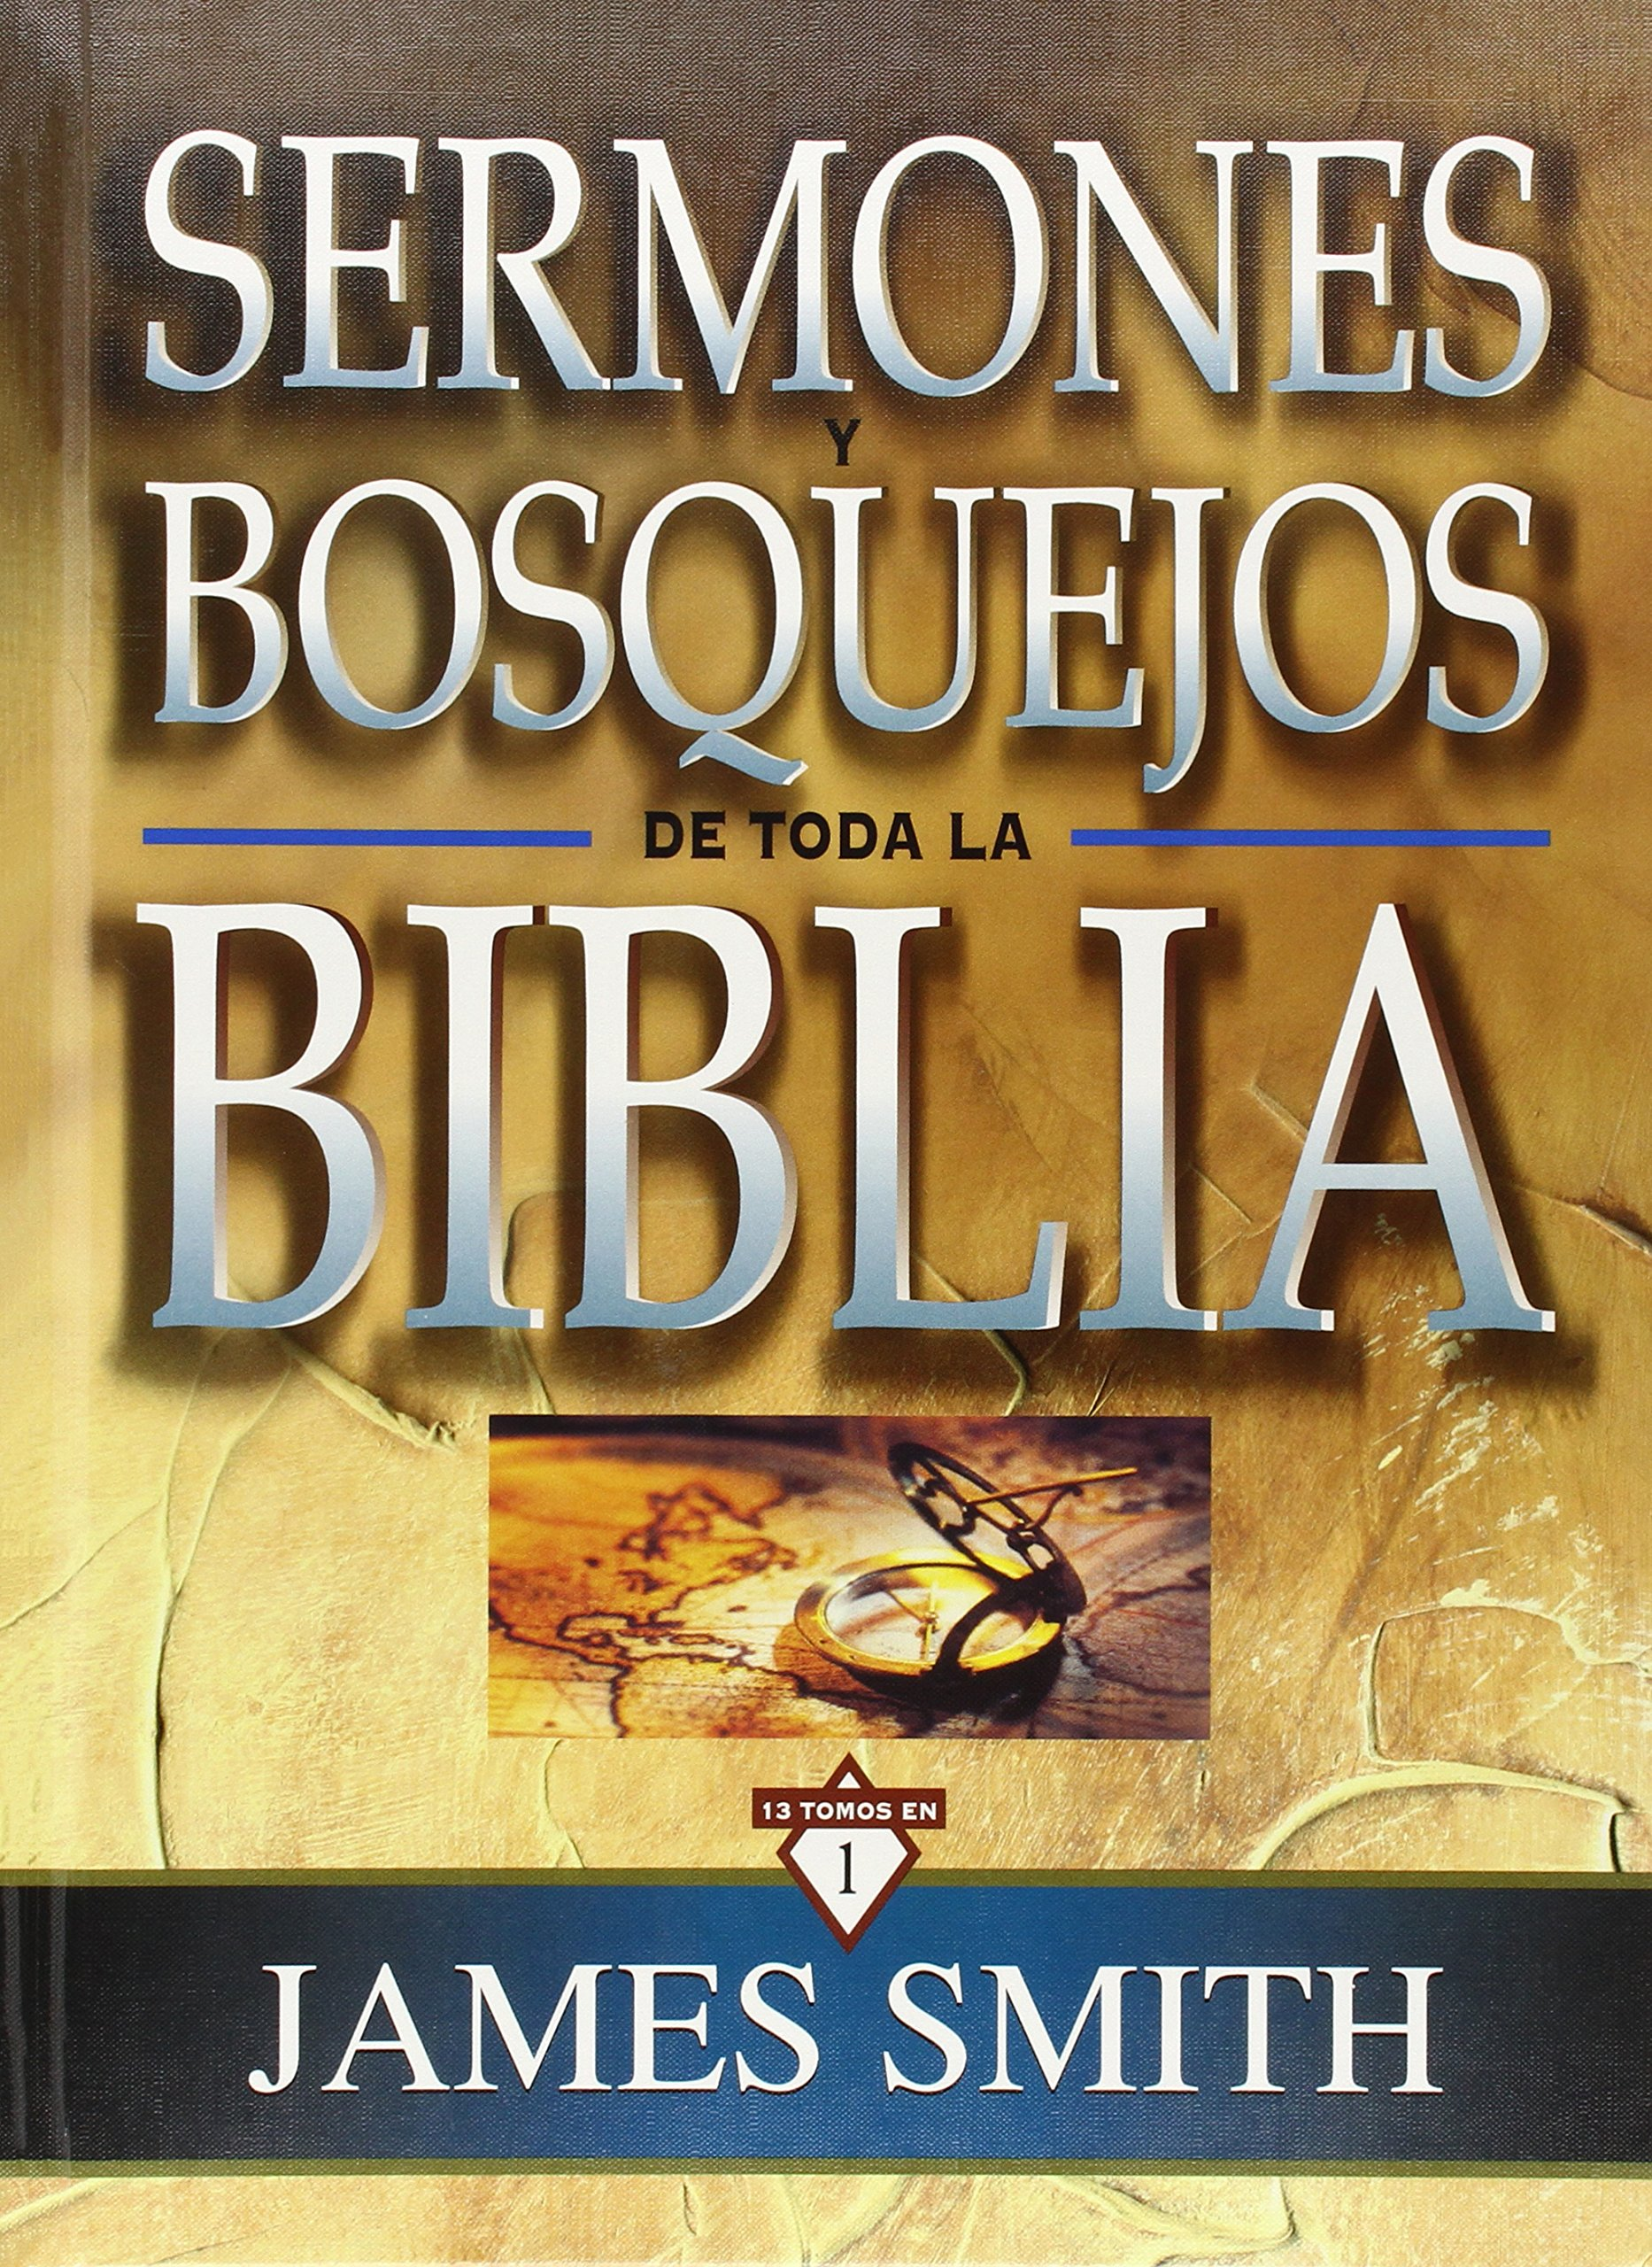 Sermones y bosquejos de toda la Biblia, 13 tomos en 1 (Spanish Edition):  James K. Smith: 9788482674902: Amazon.com: Books